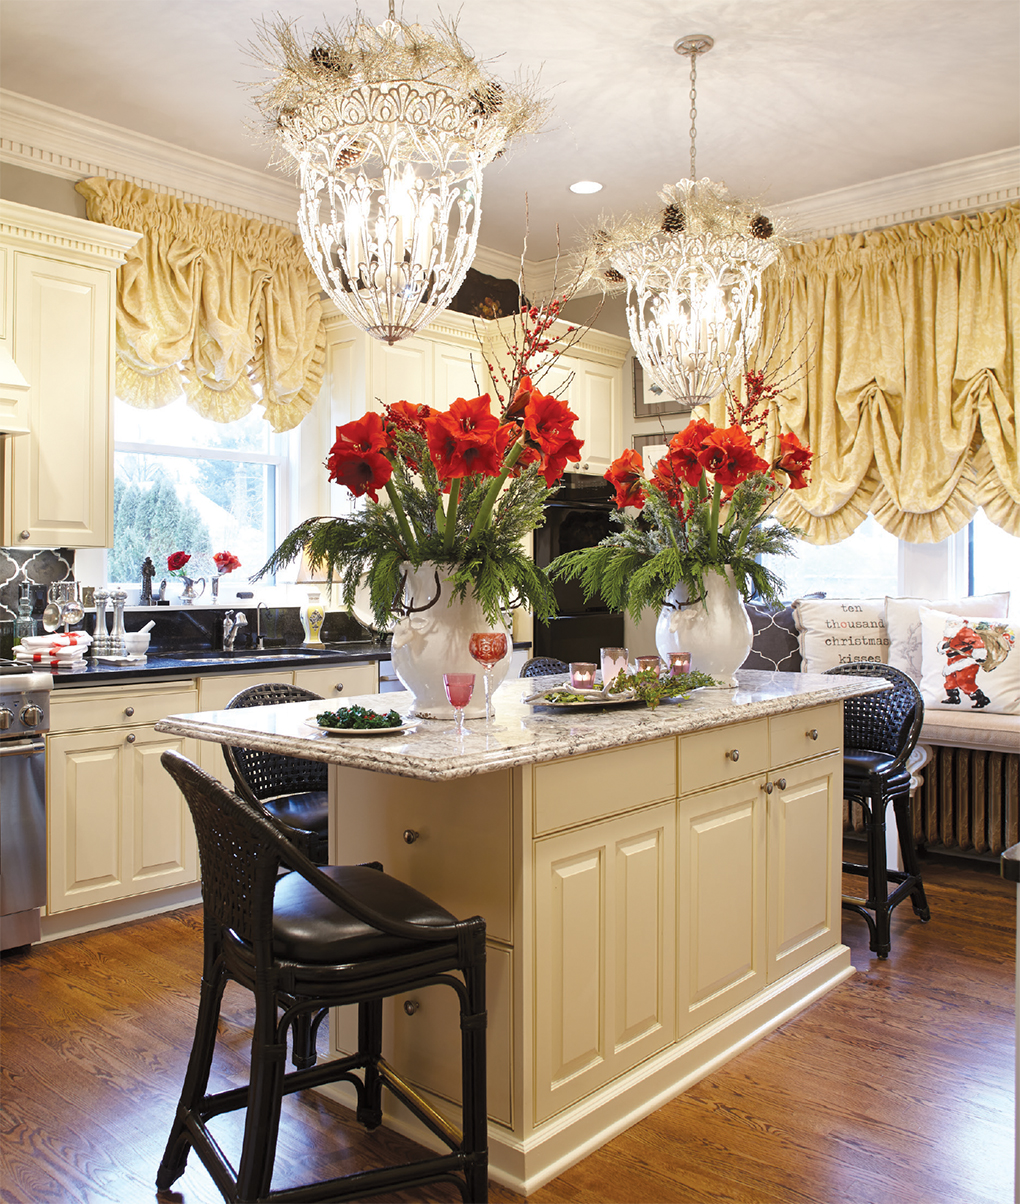 White kitchen with festive countertops